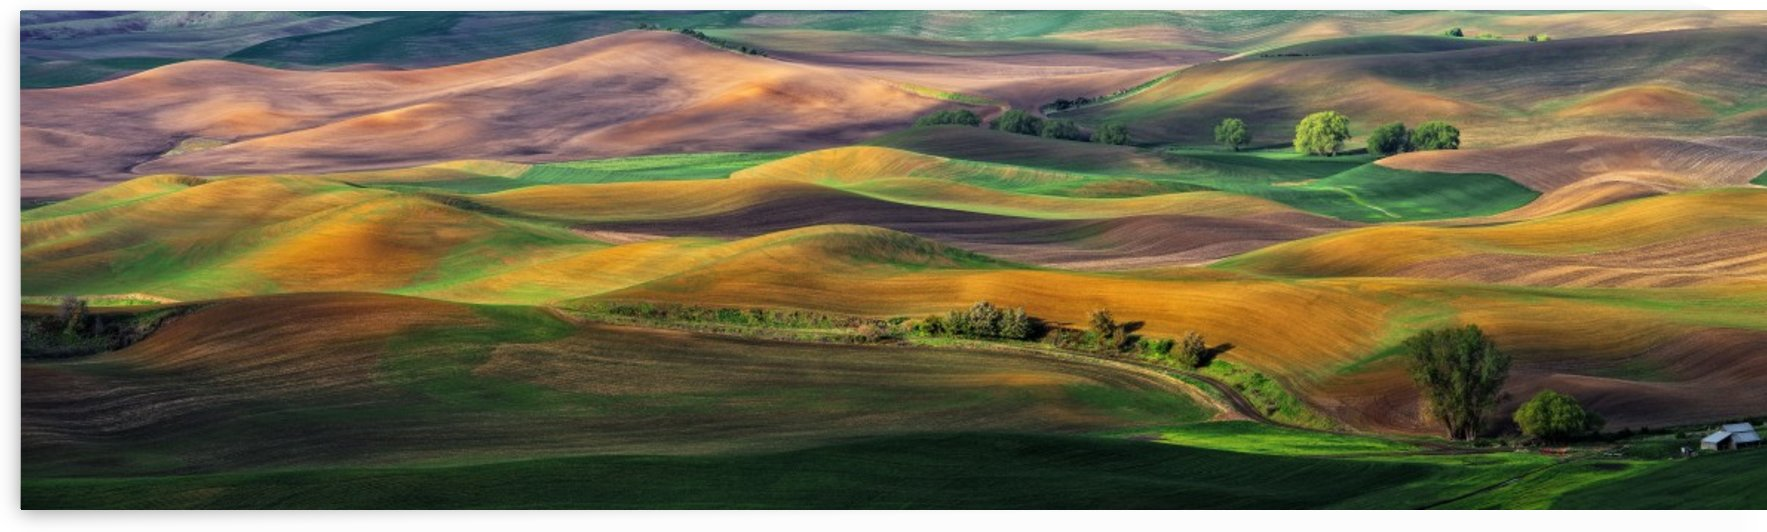 The Palouse by 1x